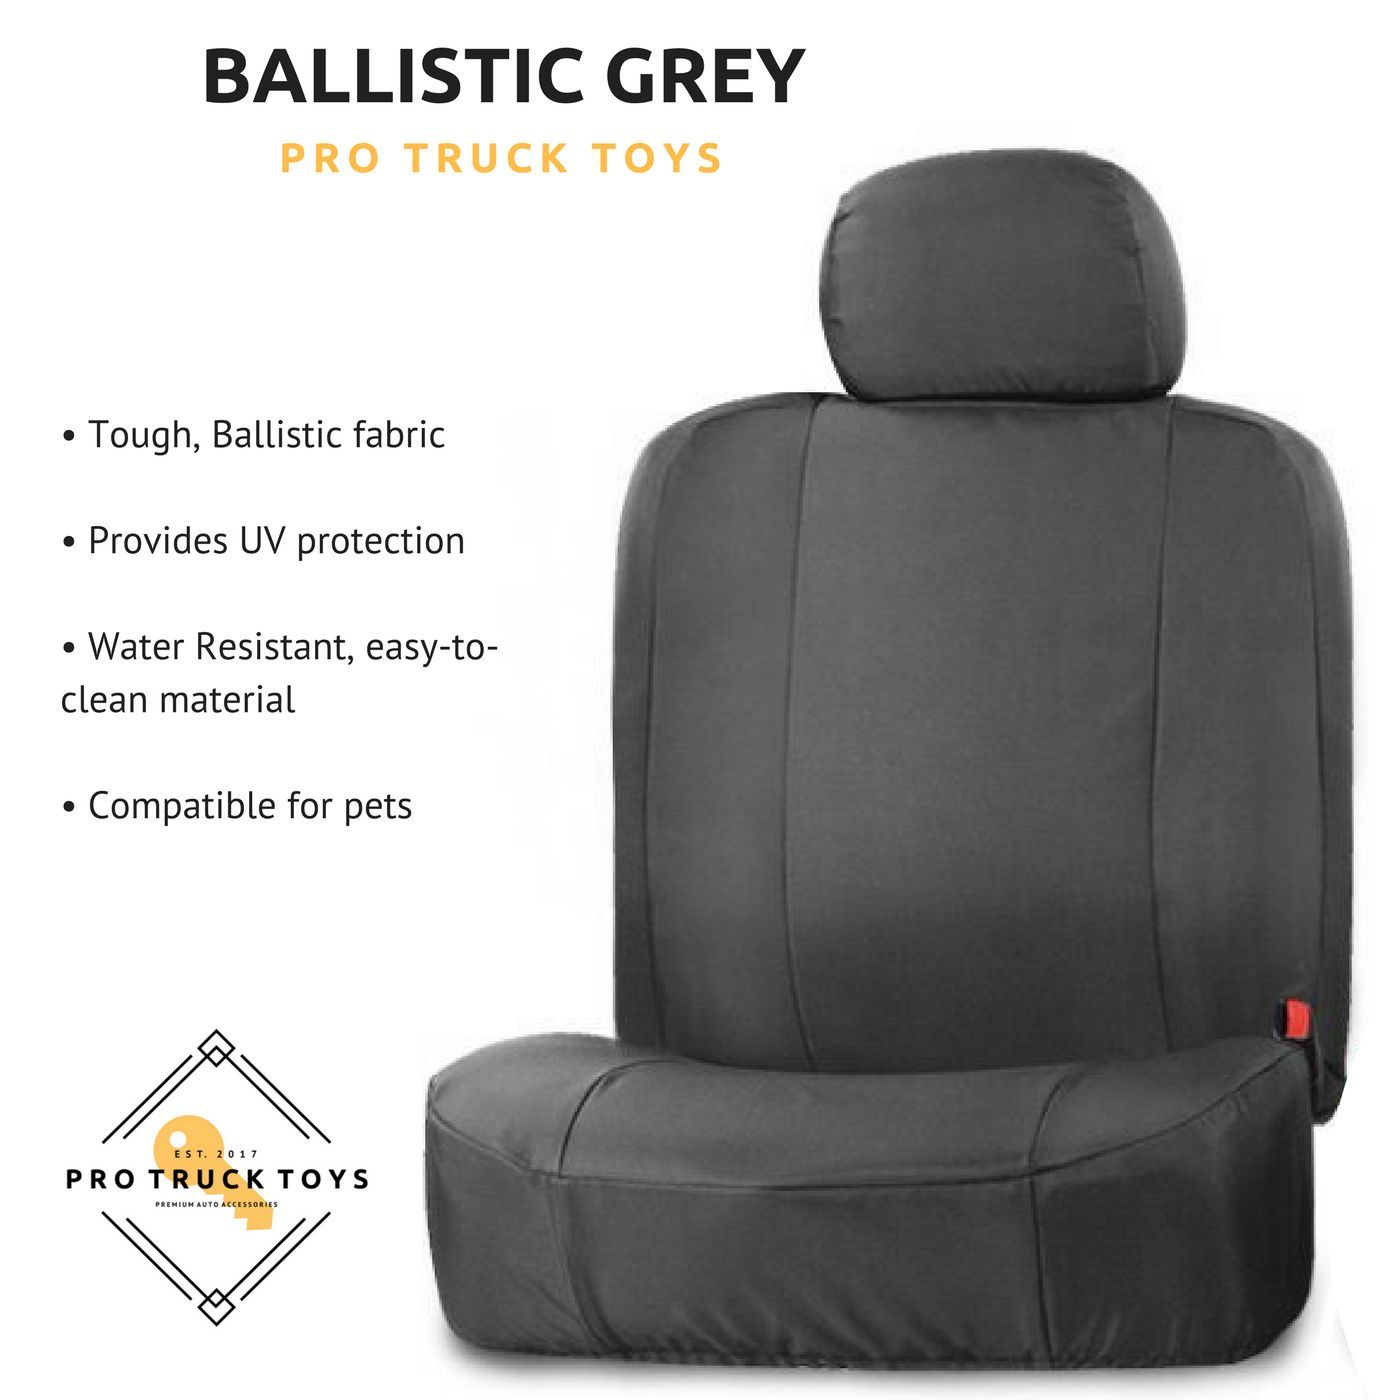 ballistic grey front seat covers 40 20 40 w 3 adjustable